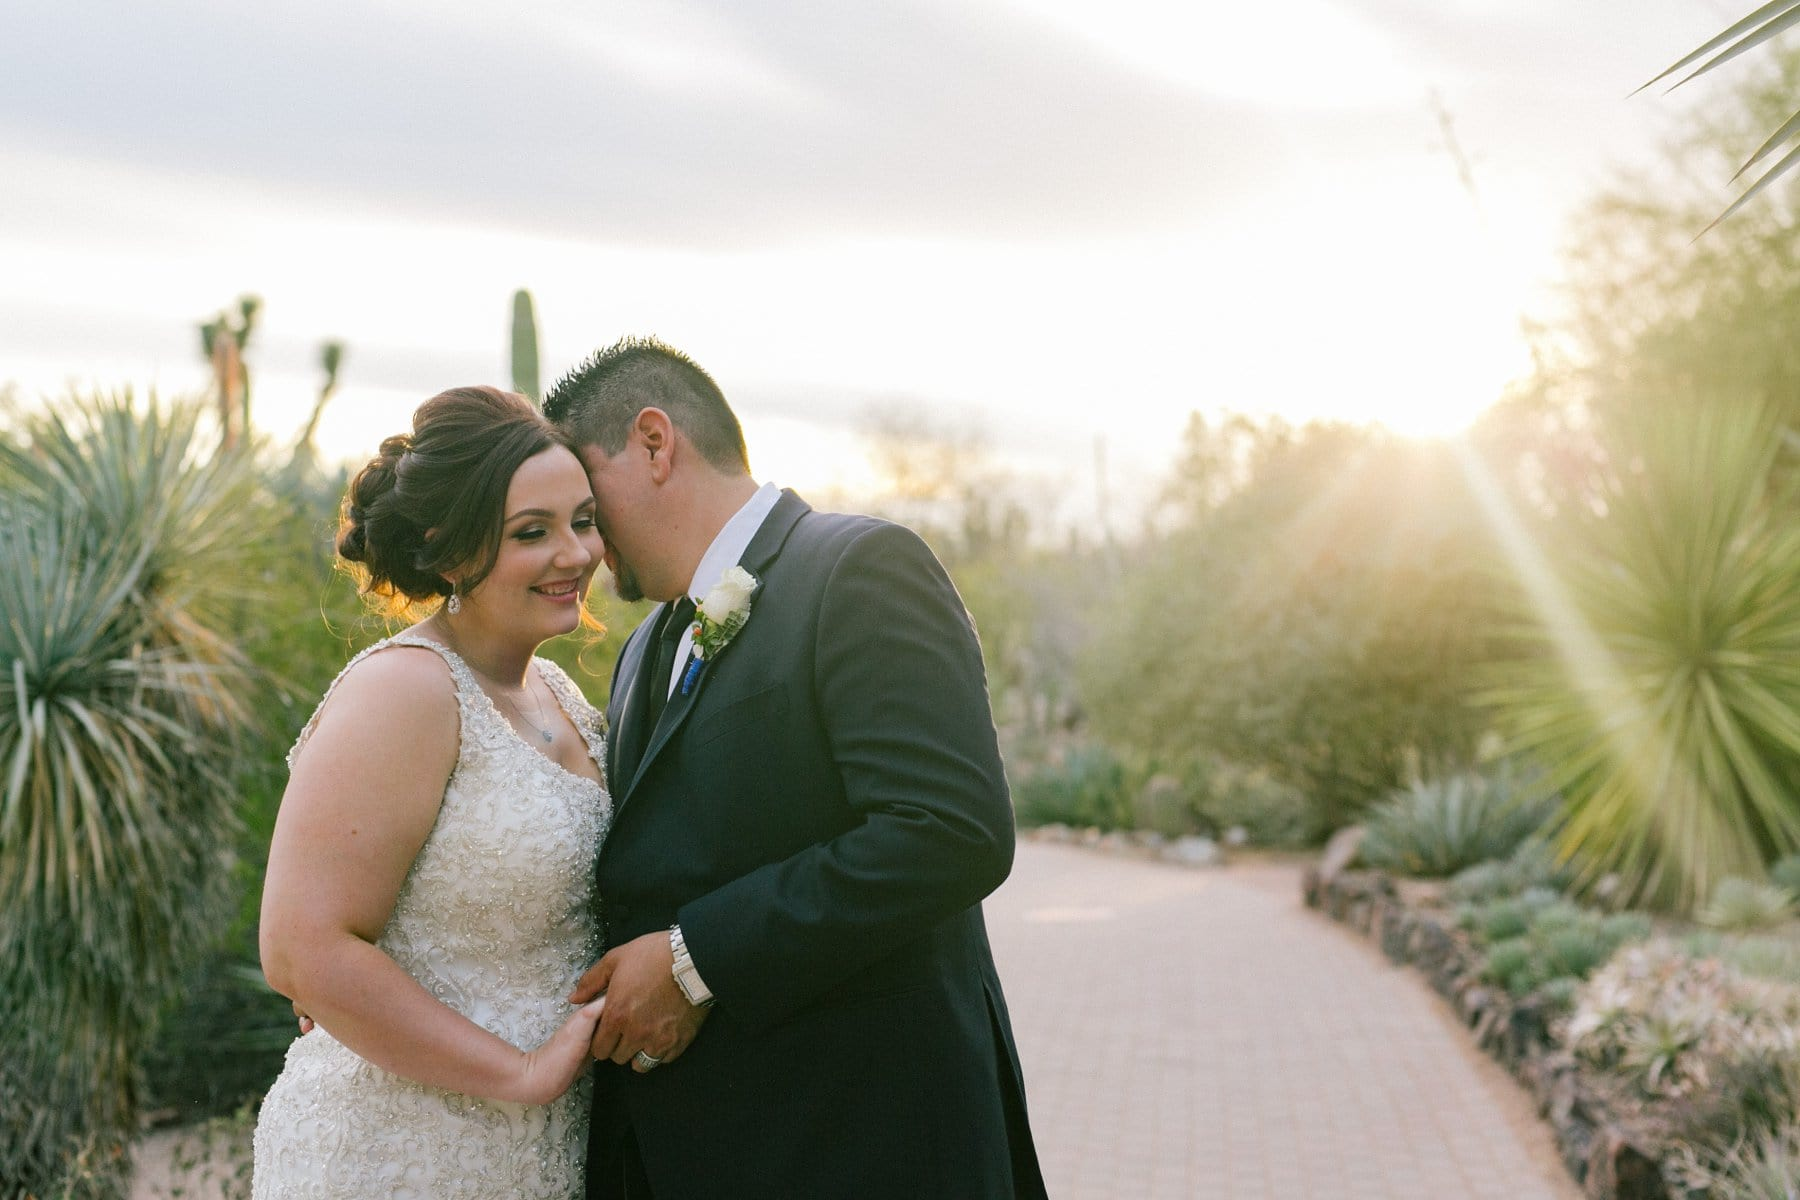 sunset portraits of bride & groom at Desert Botanical Gardens